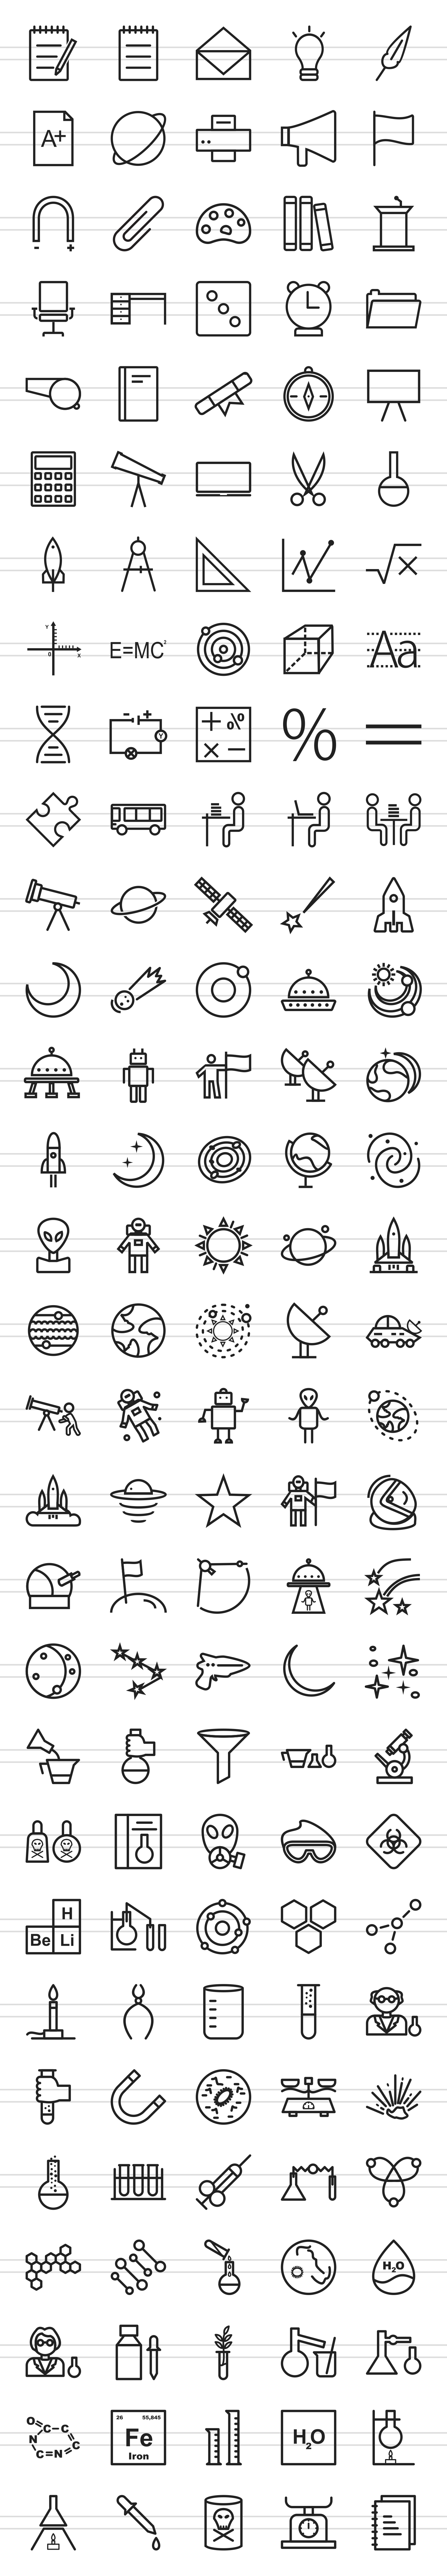 150 Science Line Icons example image 2